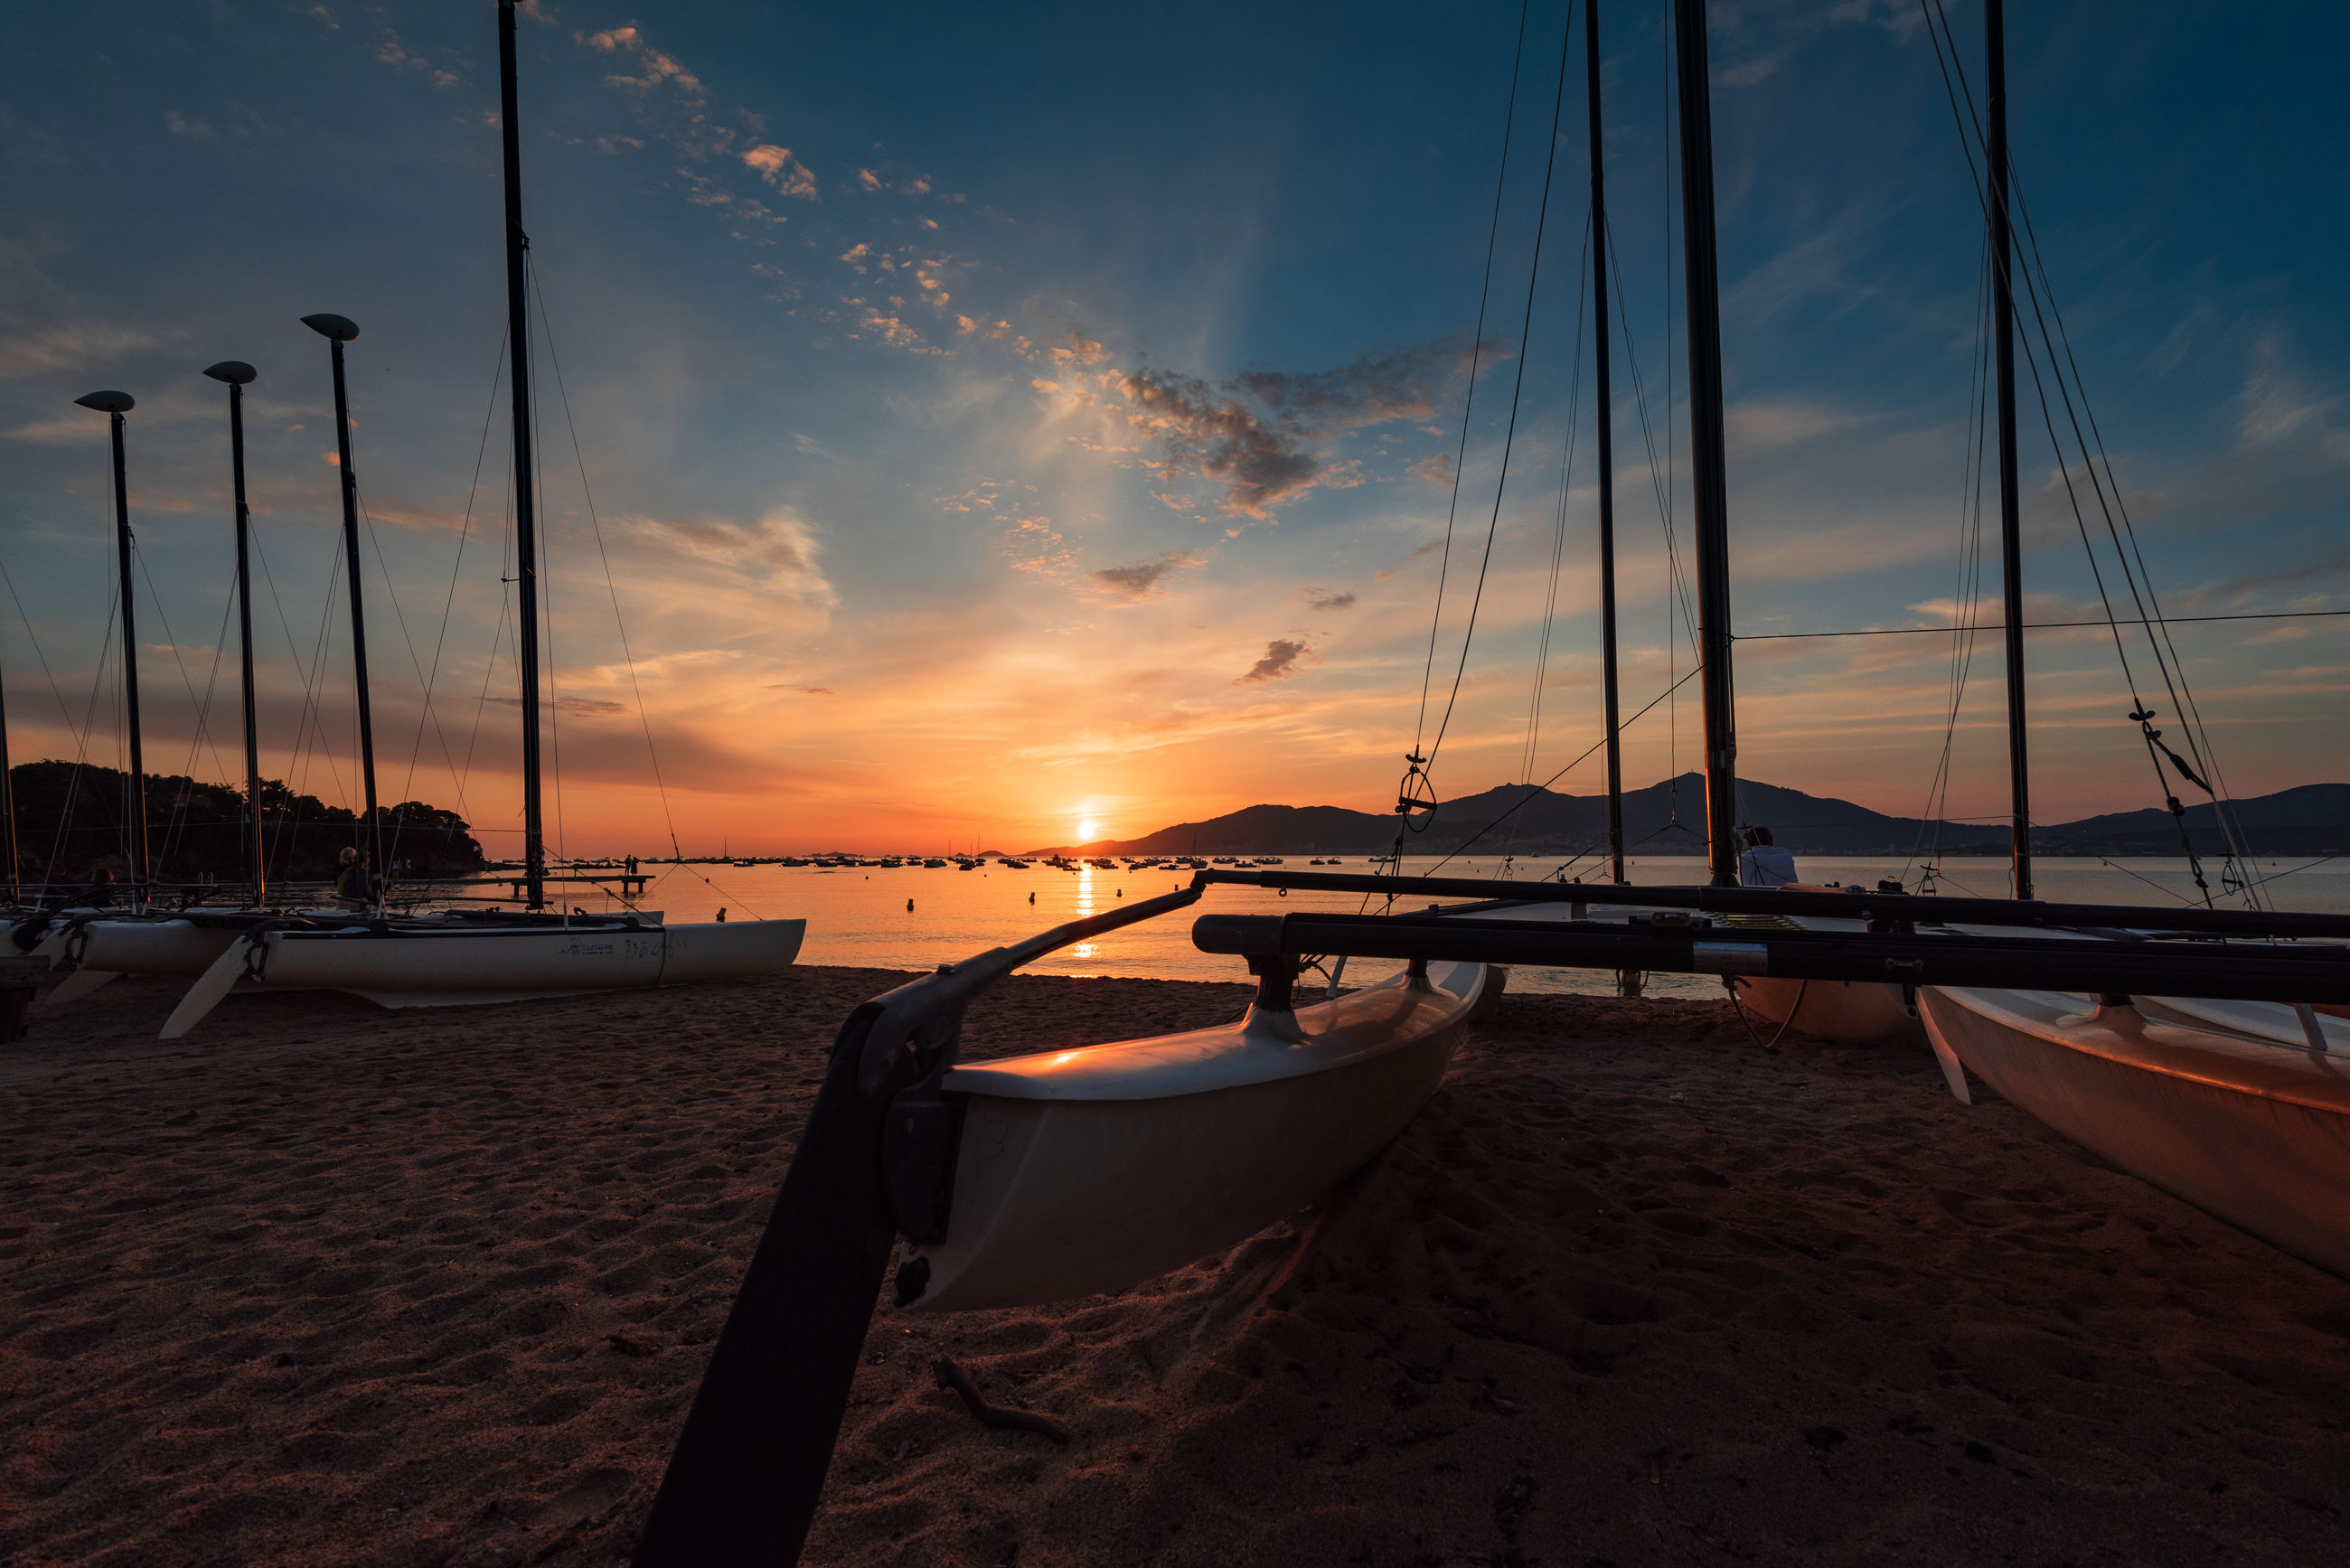 Sailboats moored on beach against sky during sunset